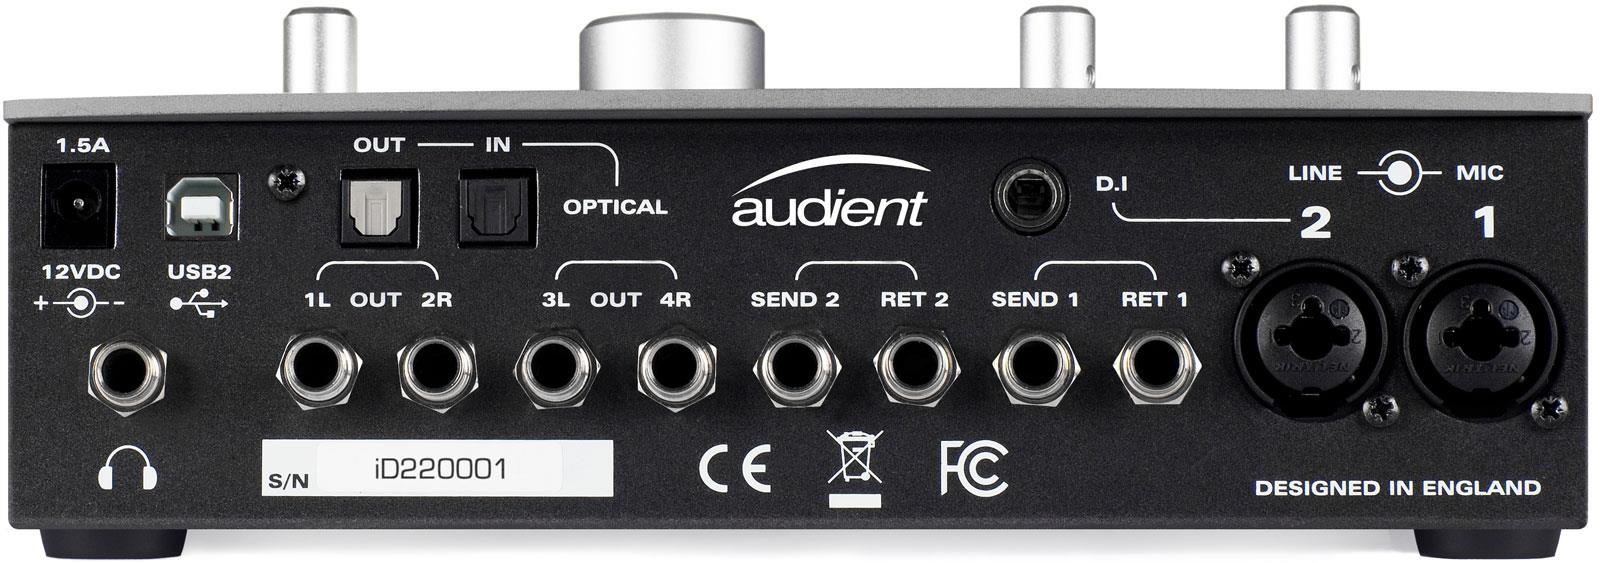 Audient iD22 Driver for Windows 7